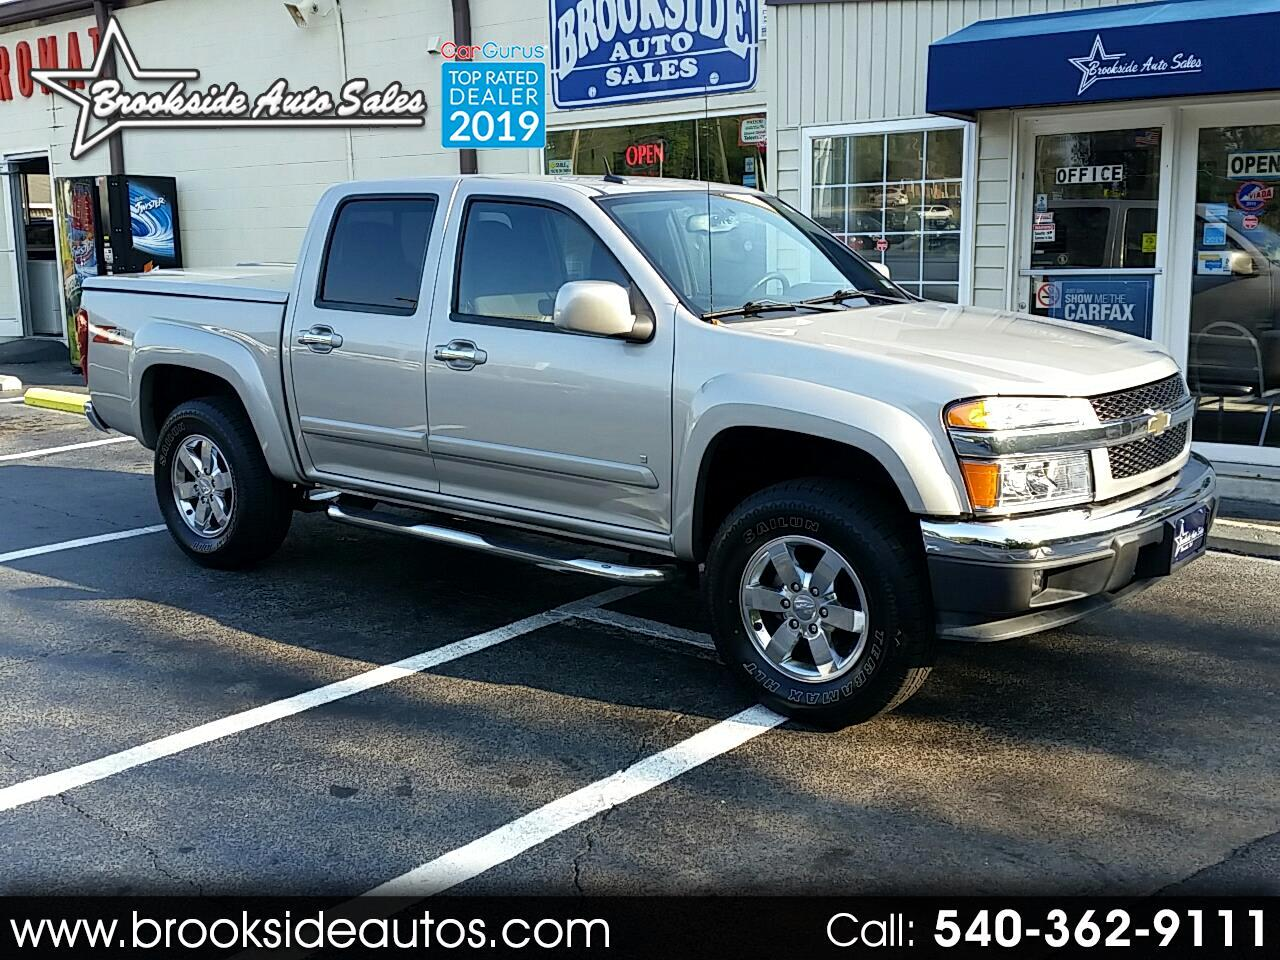 2009 Chevrolet Colorado 2WD Crew Cab